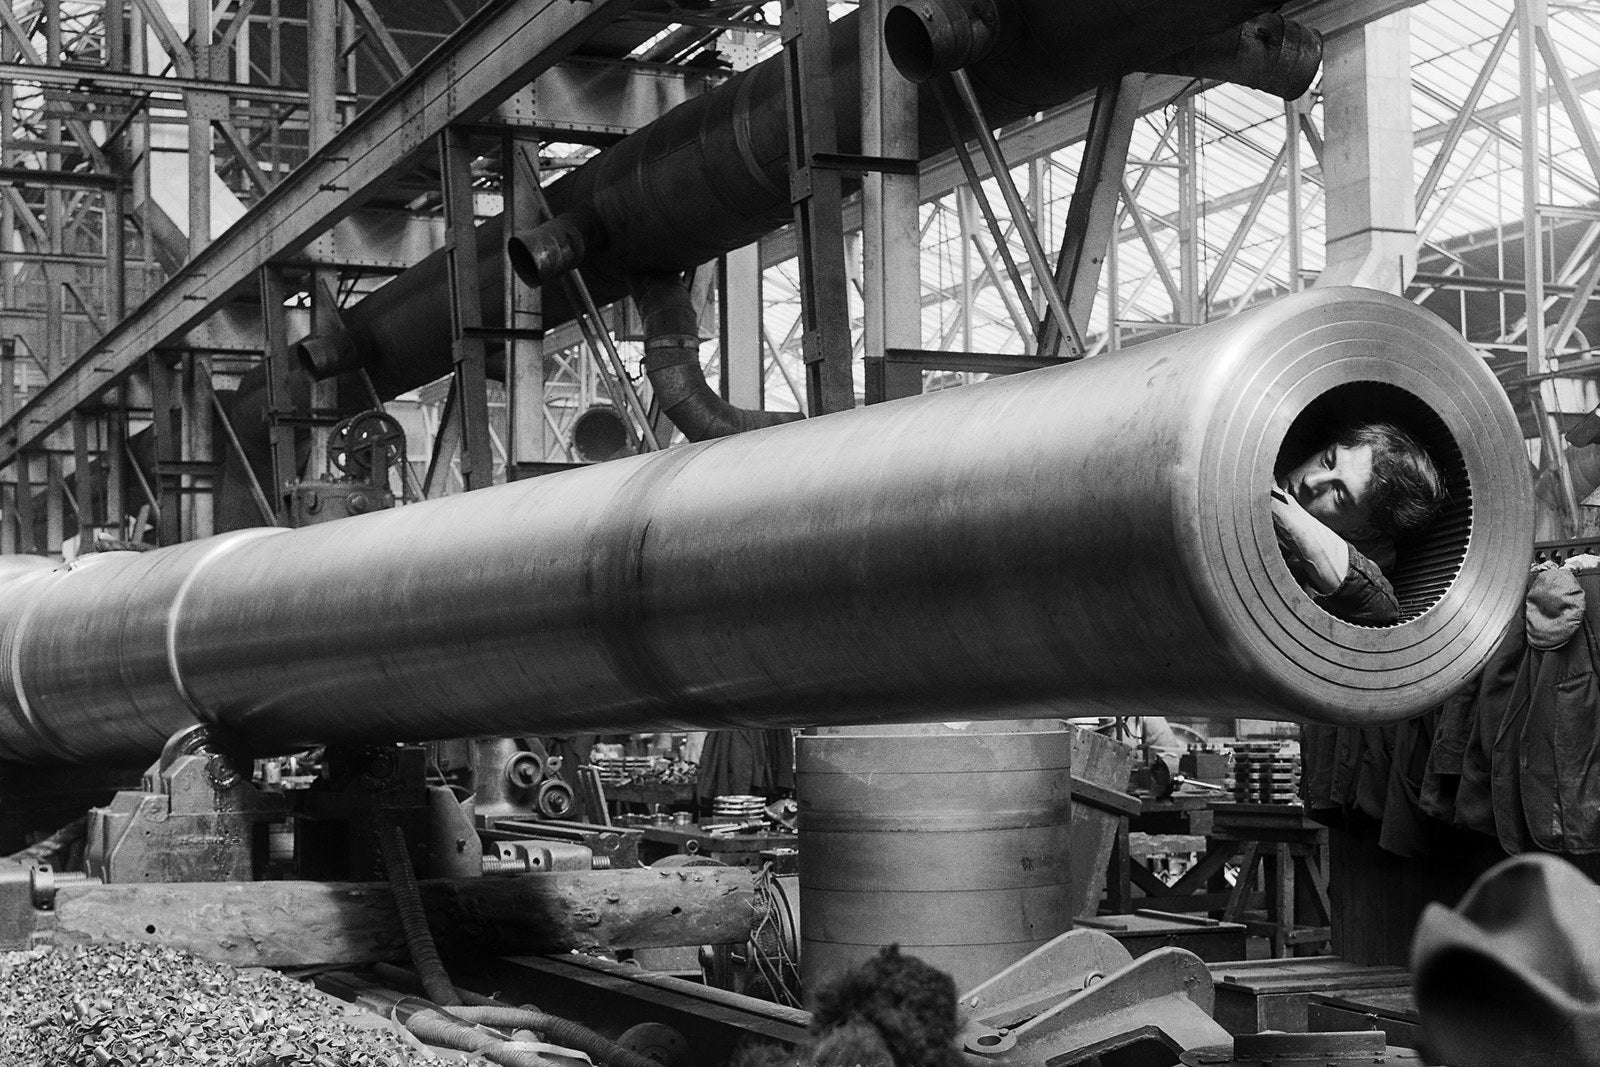 A war worker cleans inside the barrel of a naval gun at an Ordnance Works factory in London, circa 1918.